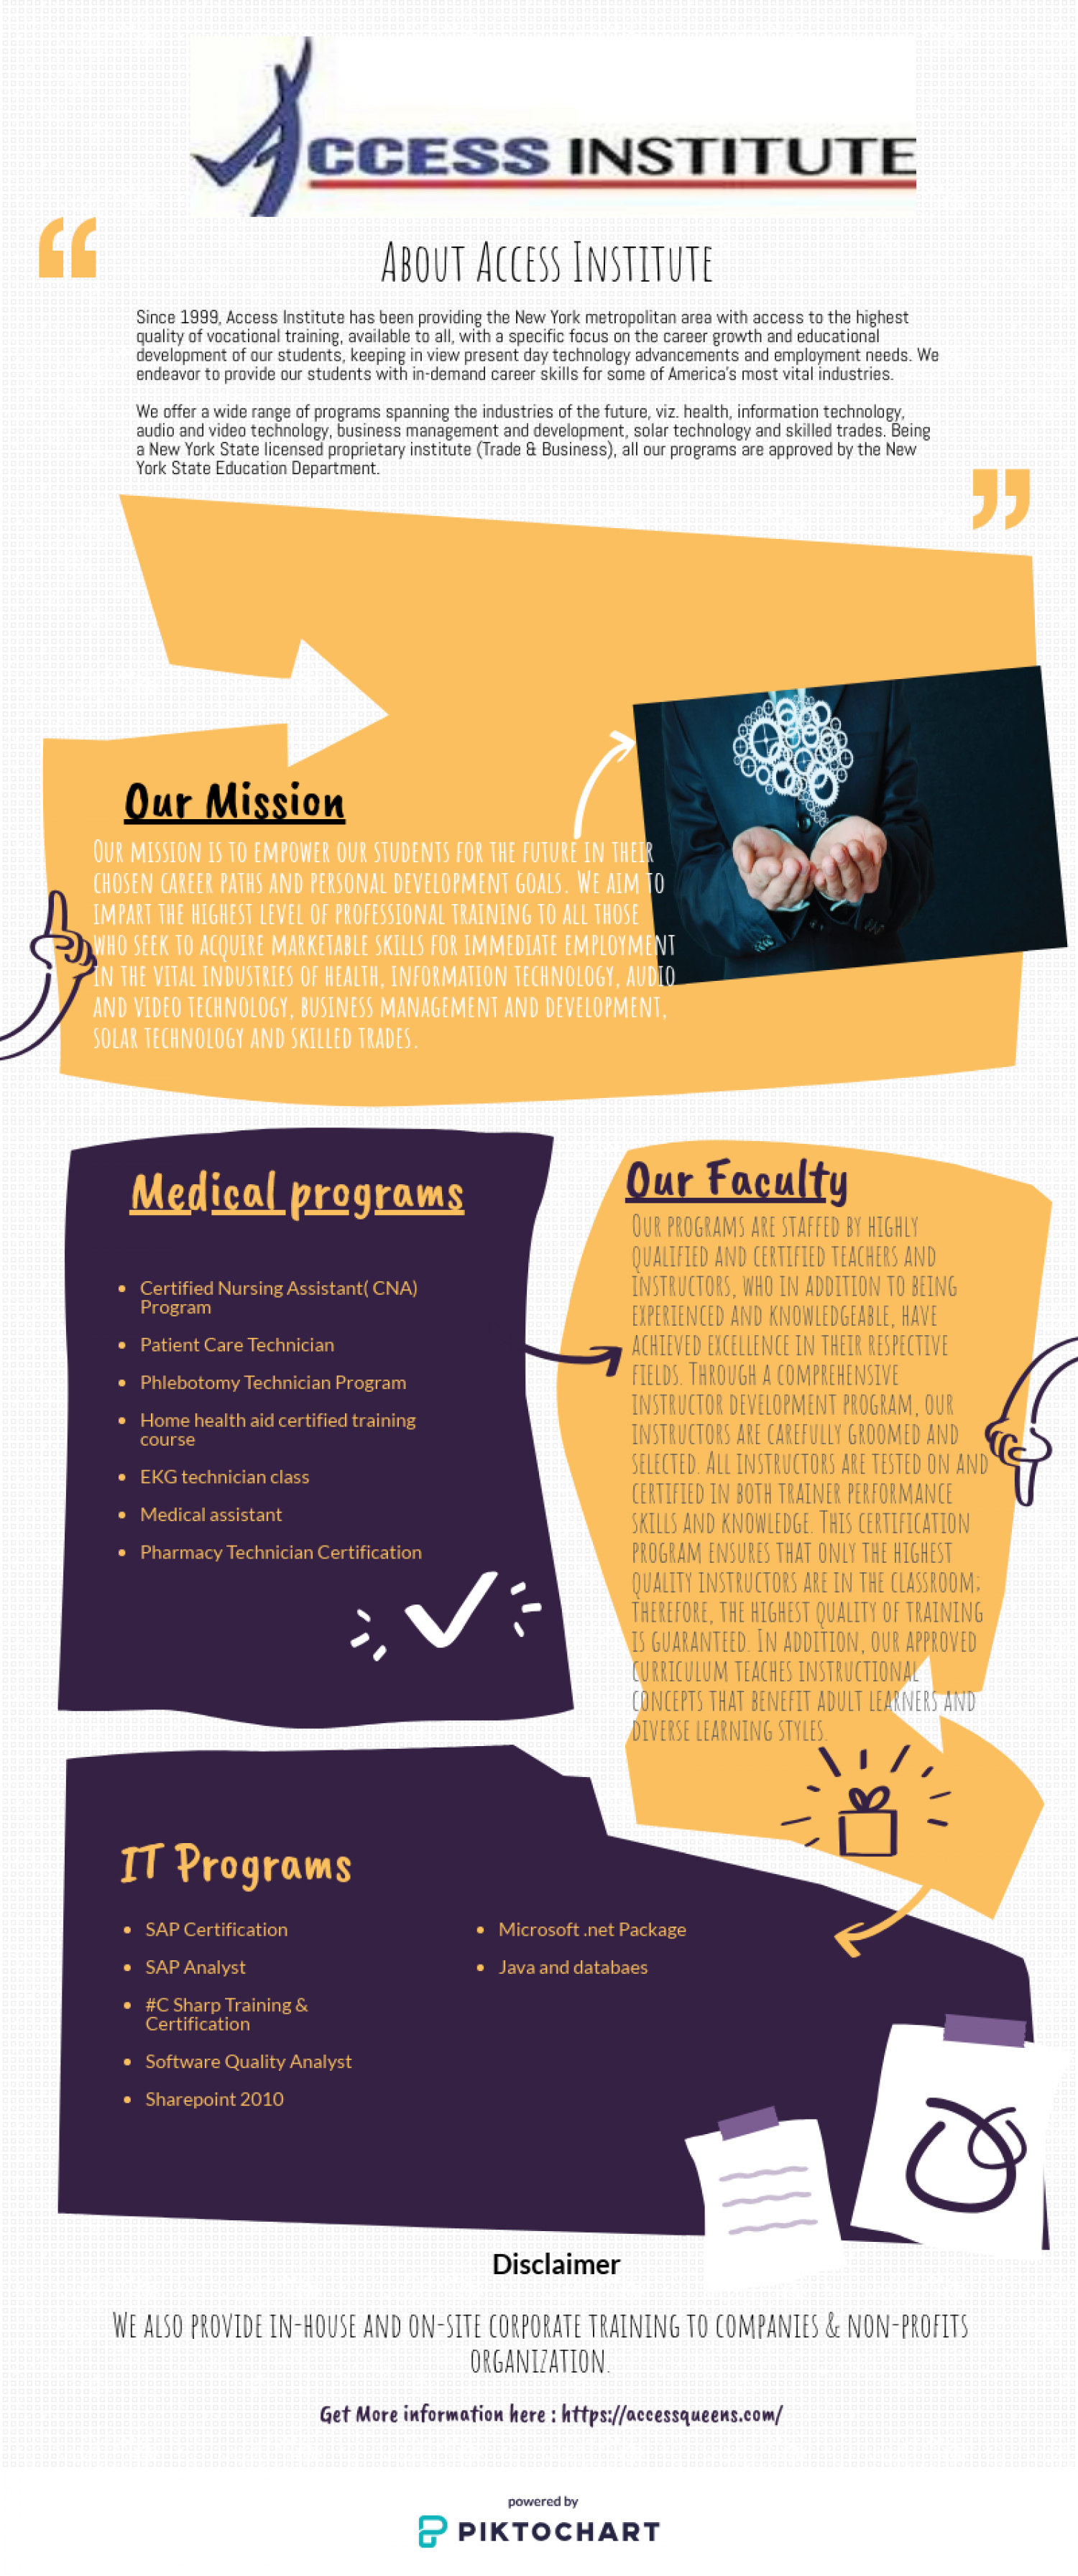 Access Institute provides best Training and Certification program. Infographic